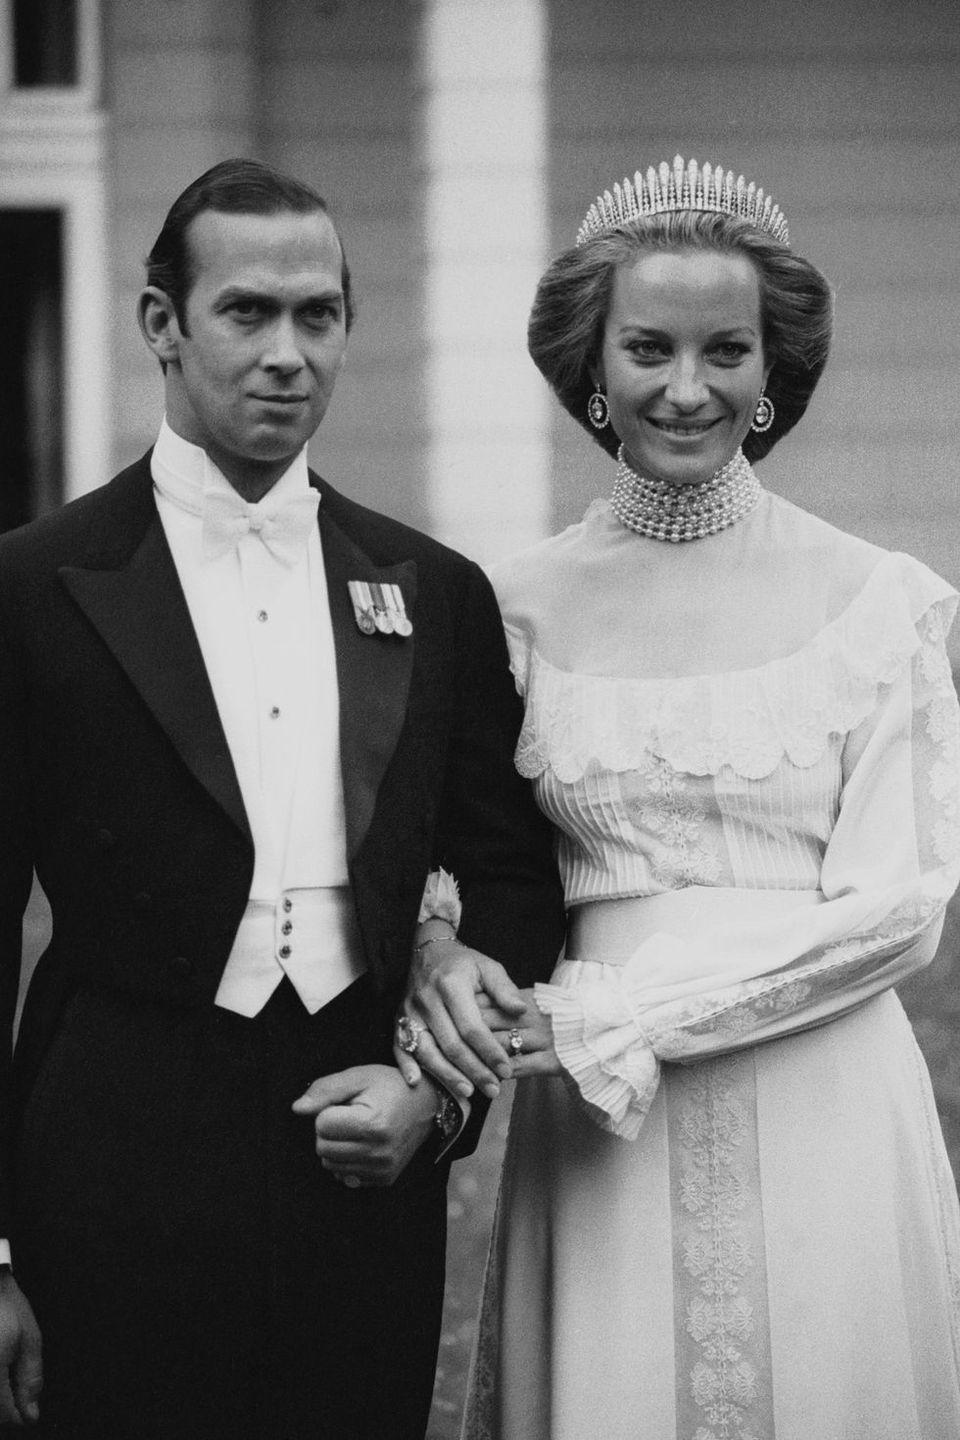 "<p><strong>Wedding date: </strong>June 30, 1978</p><p><strong>Wedding tiara: </strong>Princess Michael, also known as Marie Christine, only wore a tiara to a ball held after her wedding, not at her actual marriage ceremony. She chose <a href=""http://www.thecourtjeweller.com/2014/12/the-kent-city-of-london-fringe-tiara.html"" rel=""nofollow noopener"" target=""_blank"" data-ylk=""slk:the Kent City of London Fringe tiara"" class=""link rapid-noclick-resp"">the Kent City of London Fringe tiara</a> for the celebration, a piece which was originally given to Princess Michael's mother-in-law, Princess Marina, Duchess of Kent by the City of London on her wedding day in 1934. The tiara was left to her husband, Prince Michael, when Princess Marina died in 1968. It was also worn by Princess Alexandra of Kent and by Princess Michael's daughter, <a href=""https://www.townandcountrymag.com/style/jewelry-and-watches/a27457471/lady-gabriella-windsor-royal-wedding-tiara/"" rel=""nofollow noopener"" target=""_blank"" data-ylk=""slk:Gabriella Windsor"" class=""link rapid-noclick-resp"">Gabriella Windsor</a>, on their wedding days.</p>"